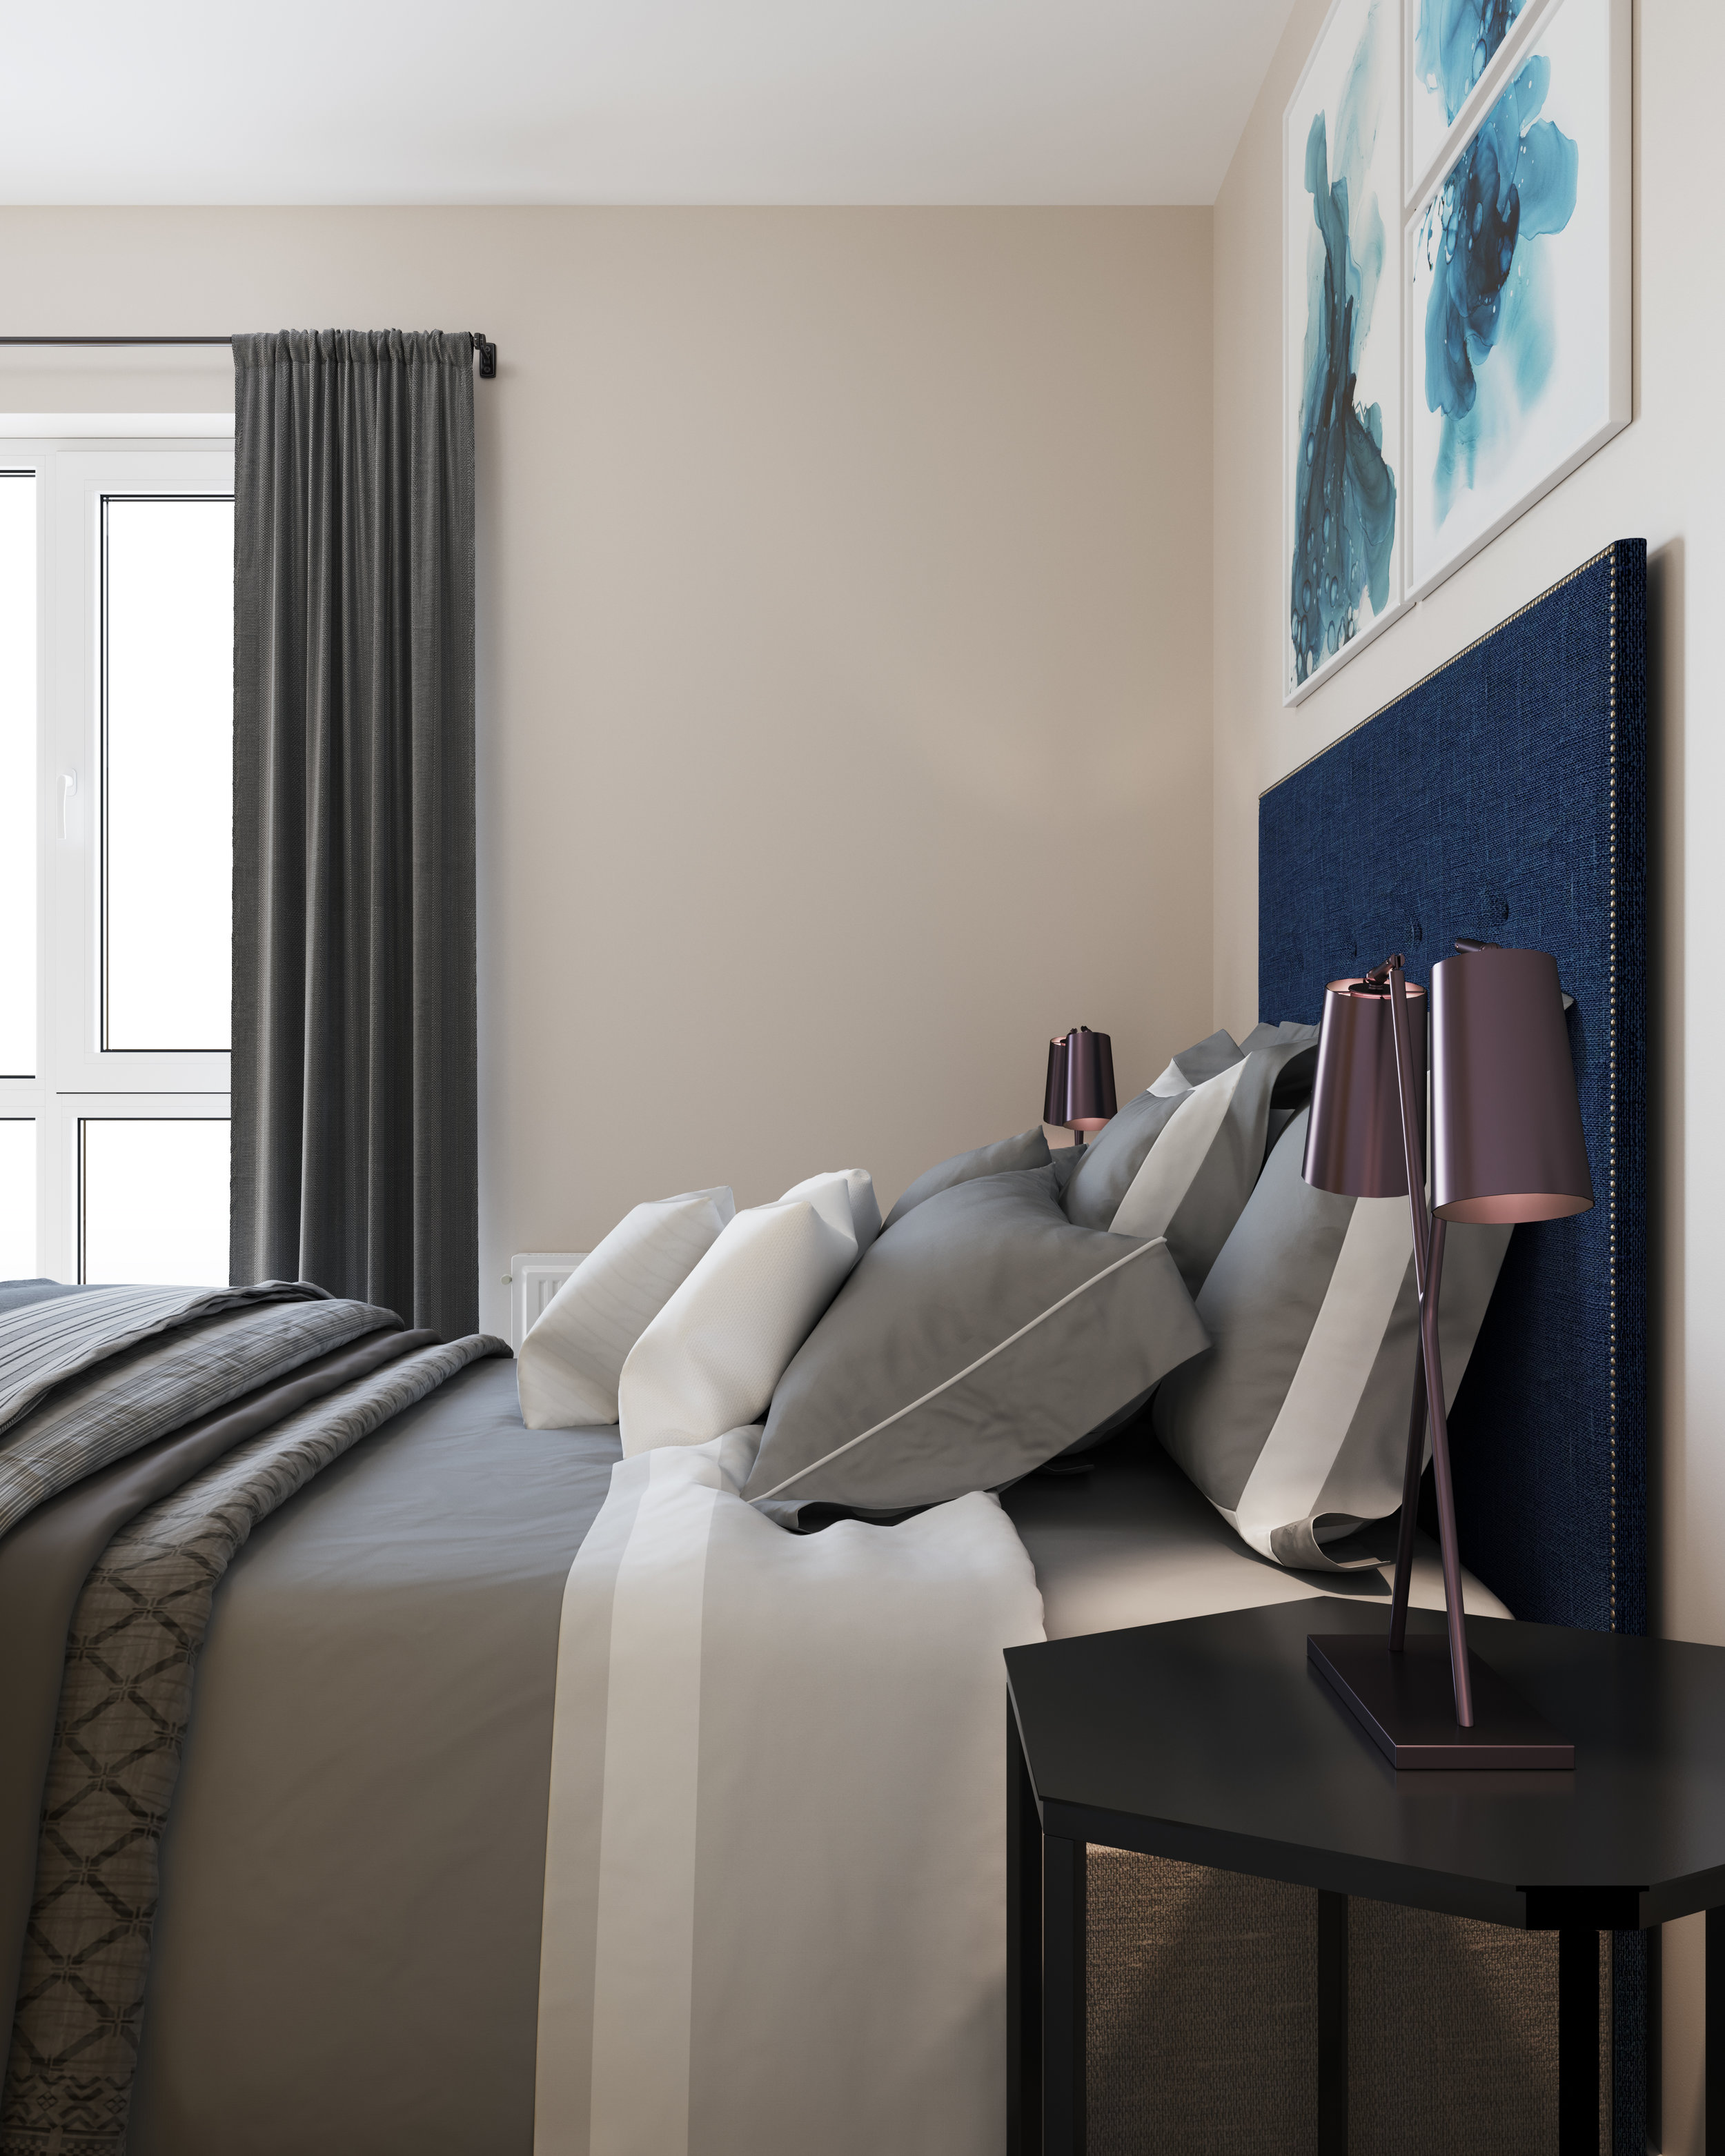 KBB - Bedroom CGI.jpg